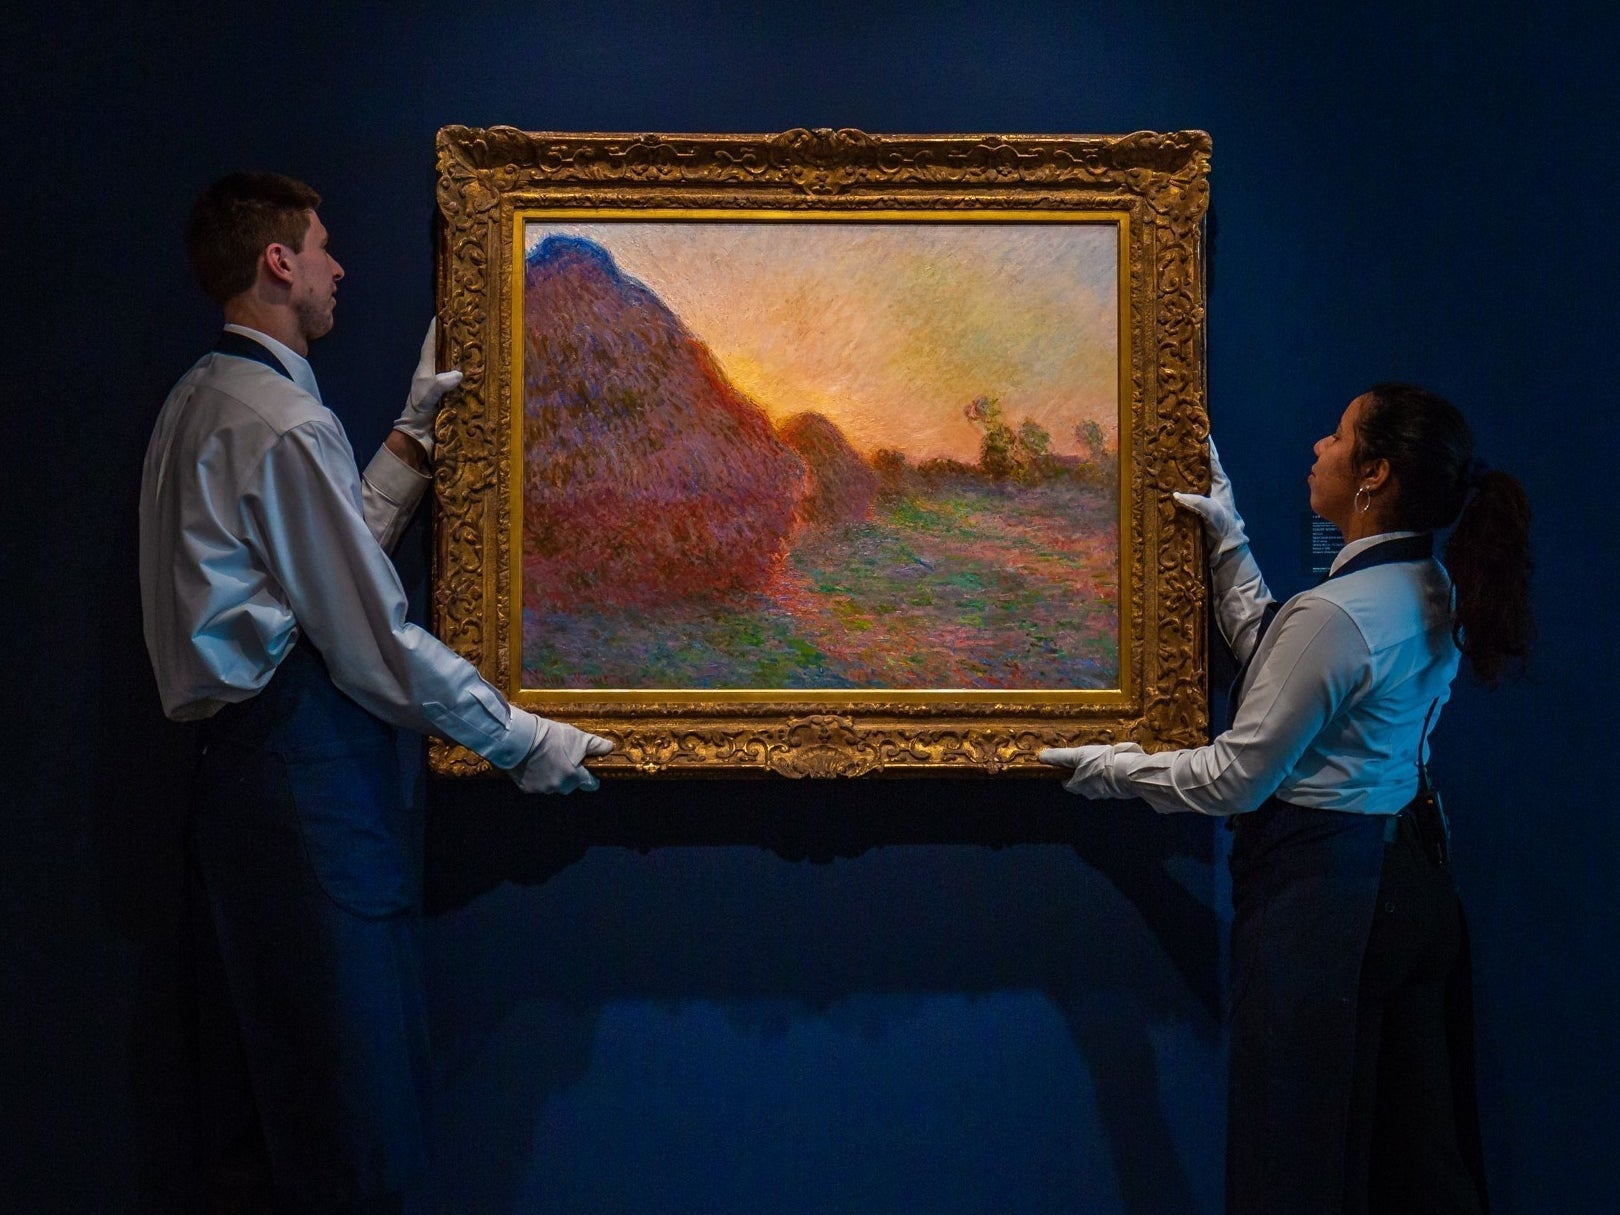 Monet Haystacks painting sells for record $110.7m at New York auction